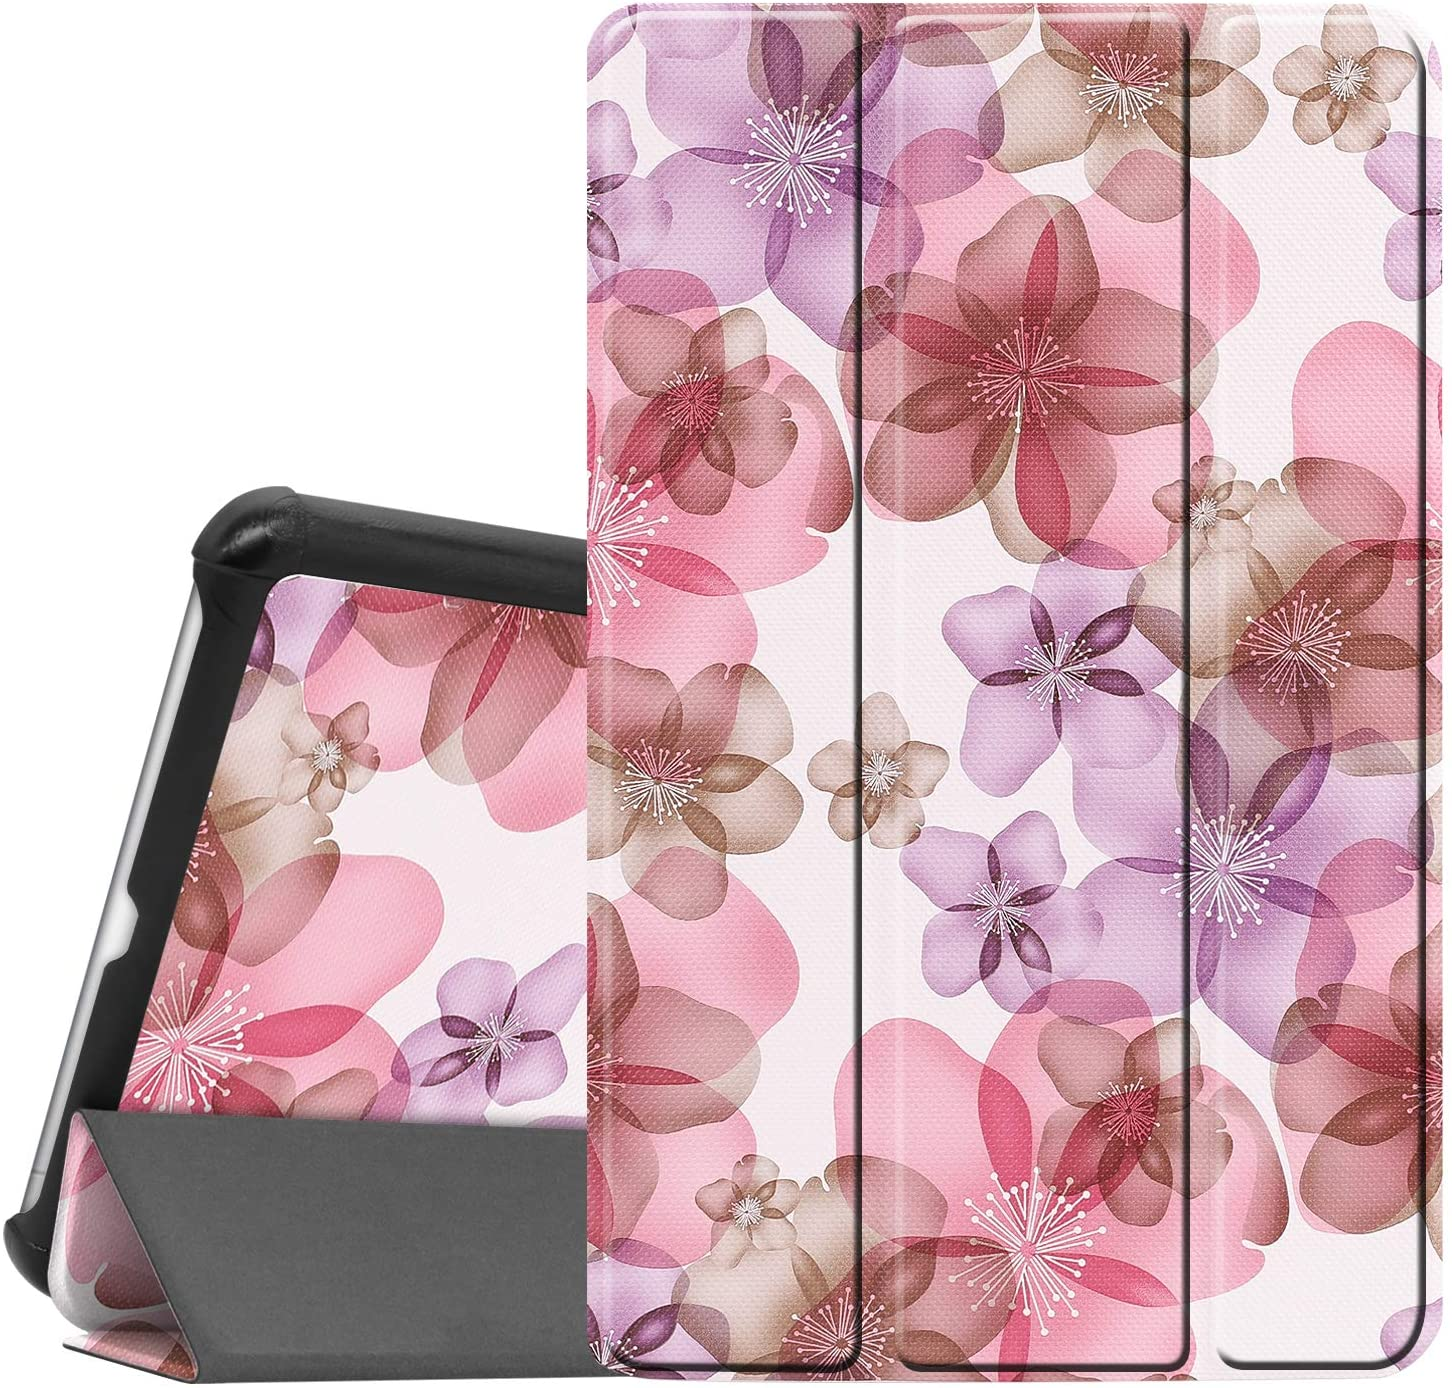 Gylint LG G Pad 5 10.1 Case, Smart Case Trifold Stand Slim Lightweight Case Cover for LG G Pad 5 10.1 Inches Tablet 2019 Release, Model:LM-T600L, T600L Pink Flower